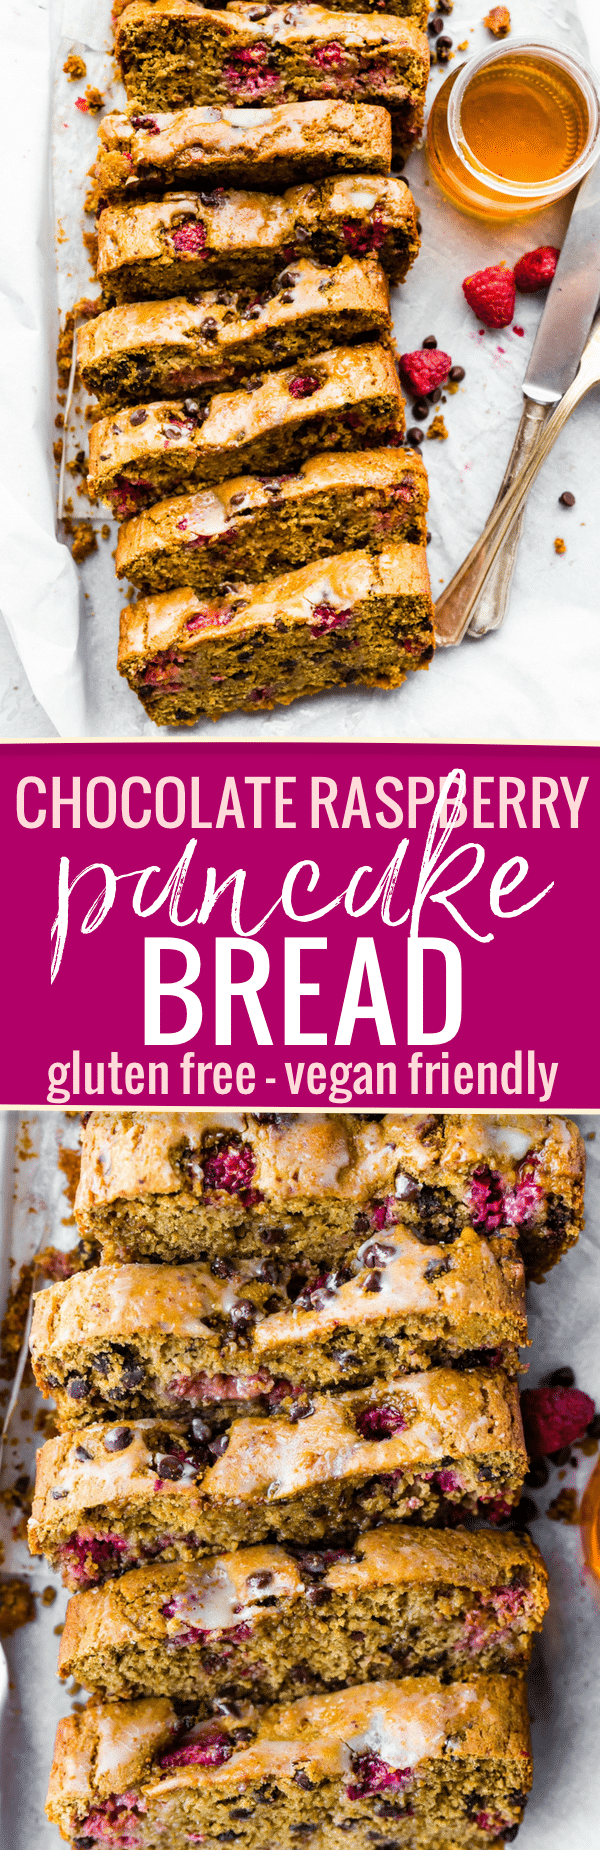 A Gluten Free Chocolate Raspberry Pancake Bread recipe that's great for brunch or breakfast. It's simple to make with wholesome ingredients. An allergy friendly and vegan friendly quick pancake bread recipe with the just the right fruit and chocolate combo. Freezer friendly too! www.cottercrunch.com